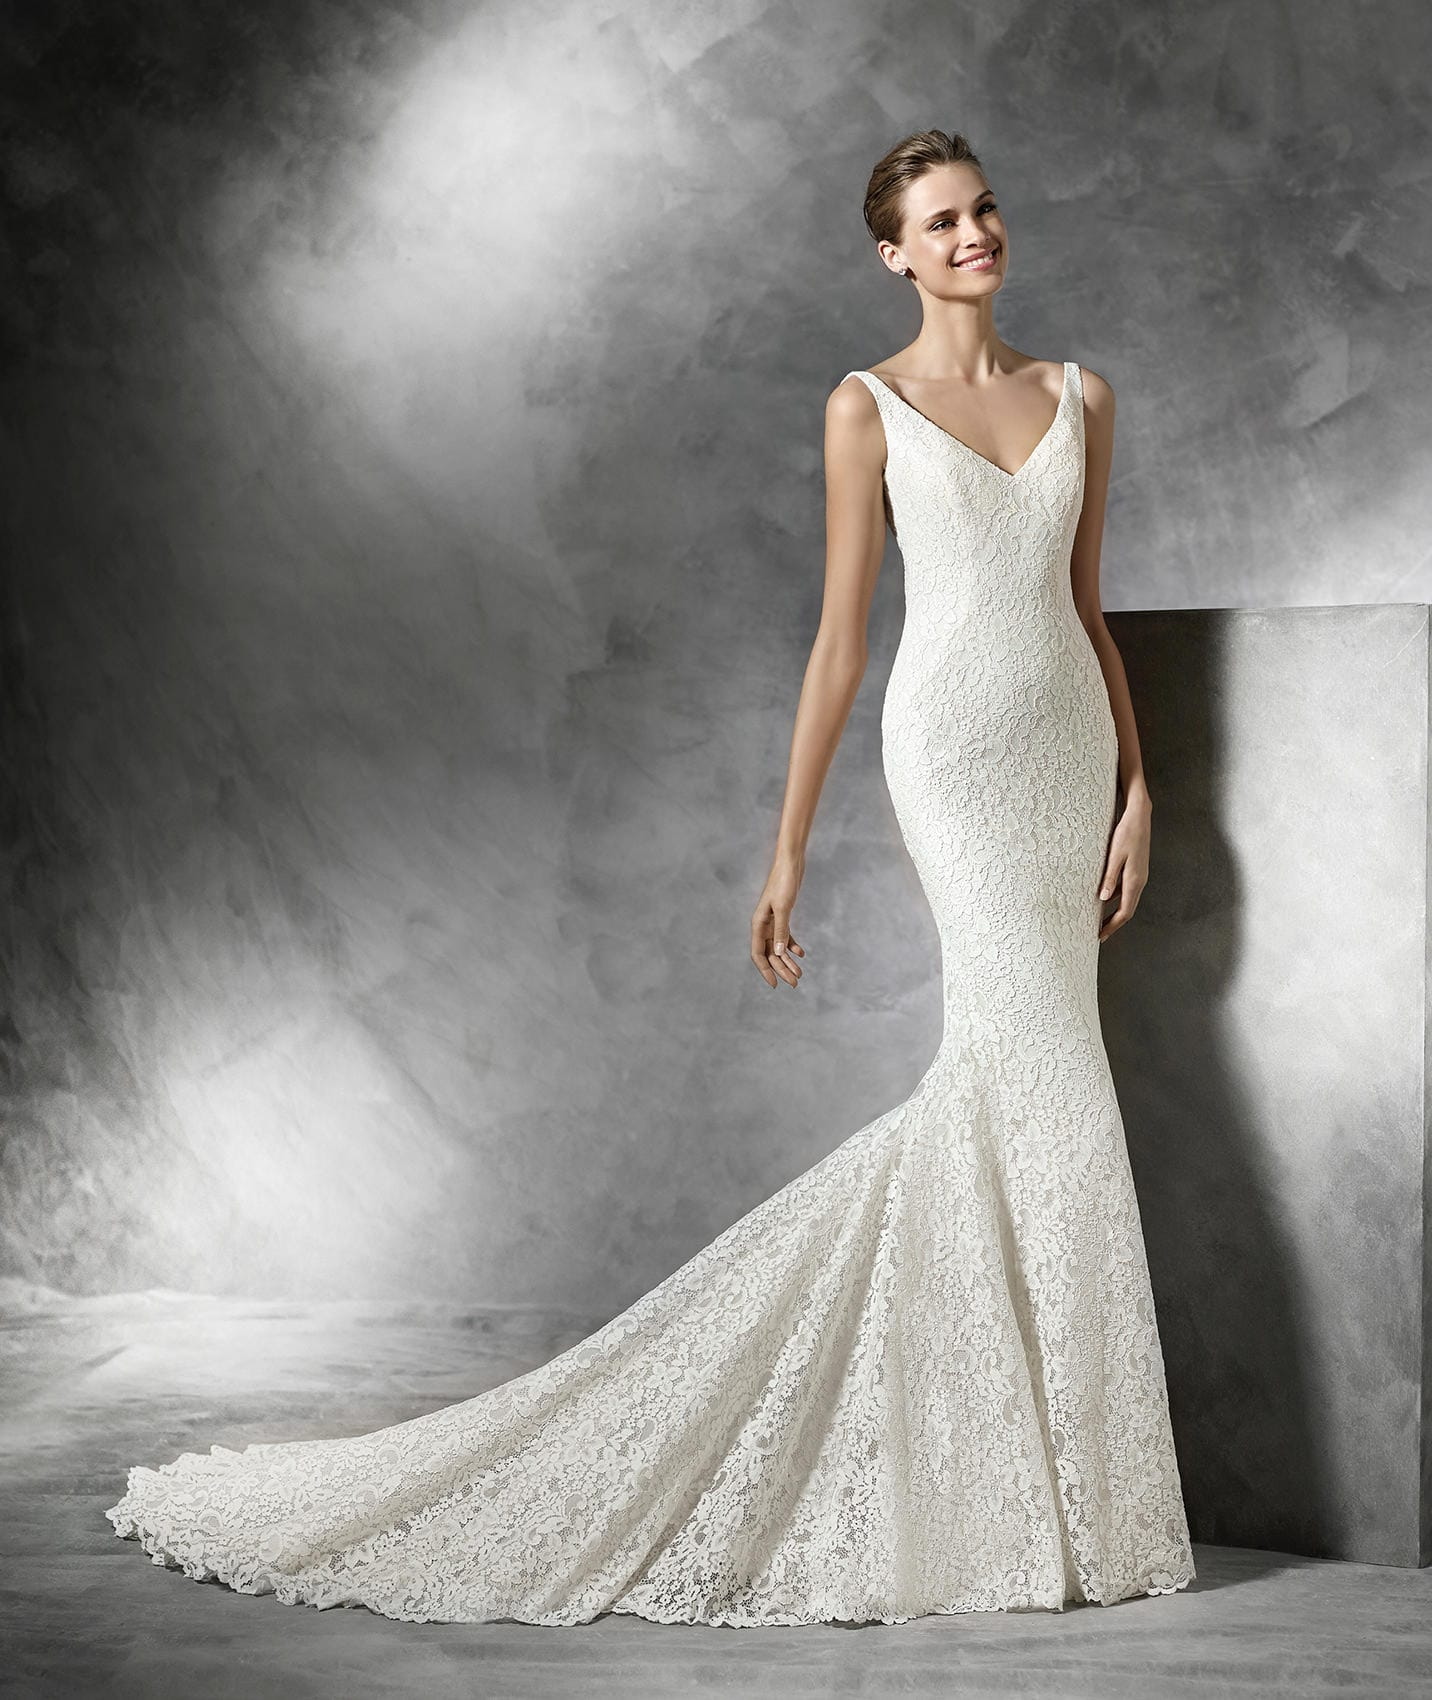 Pronovias maricel sell my wedding dress online sell my for Buy designer wedding dresses online